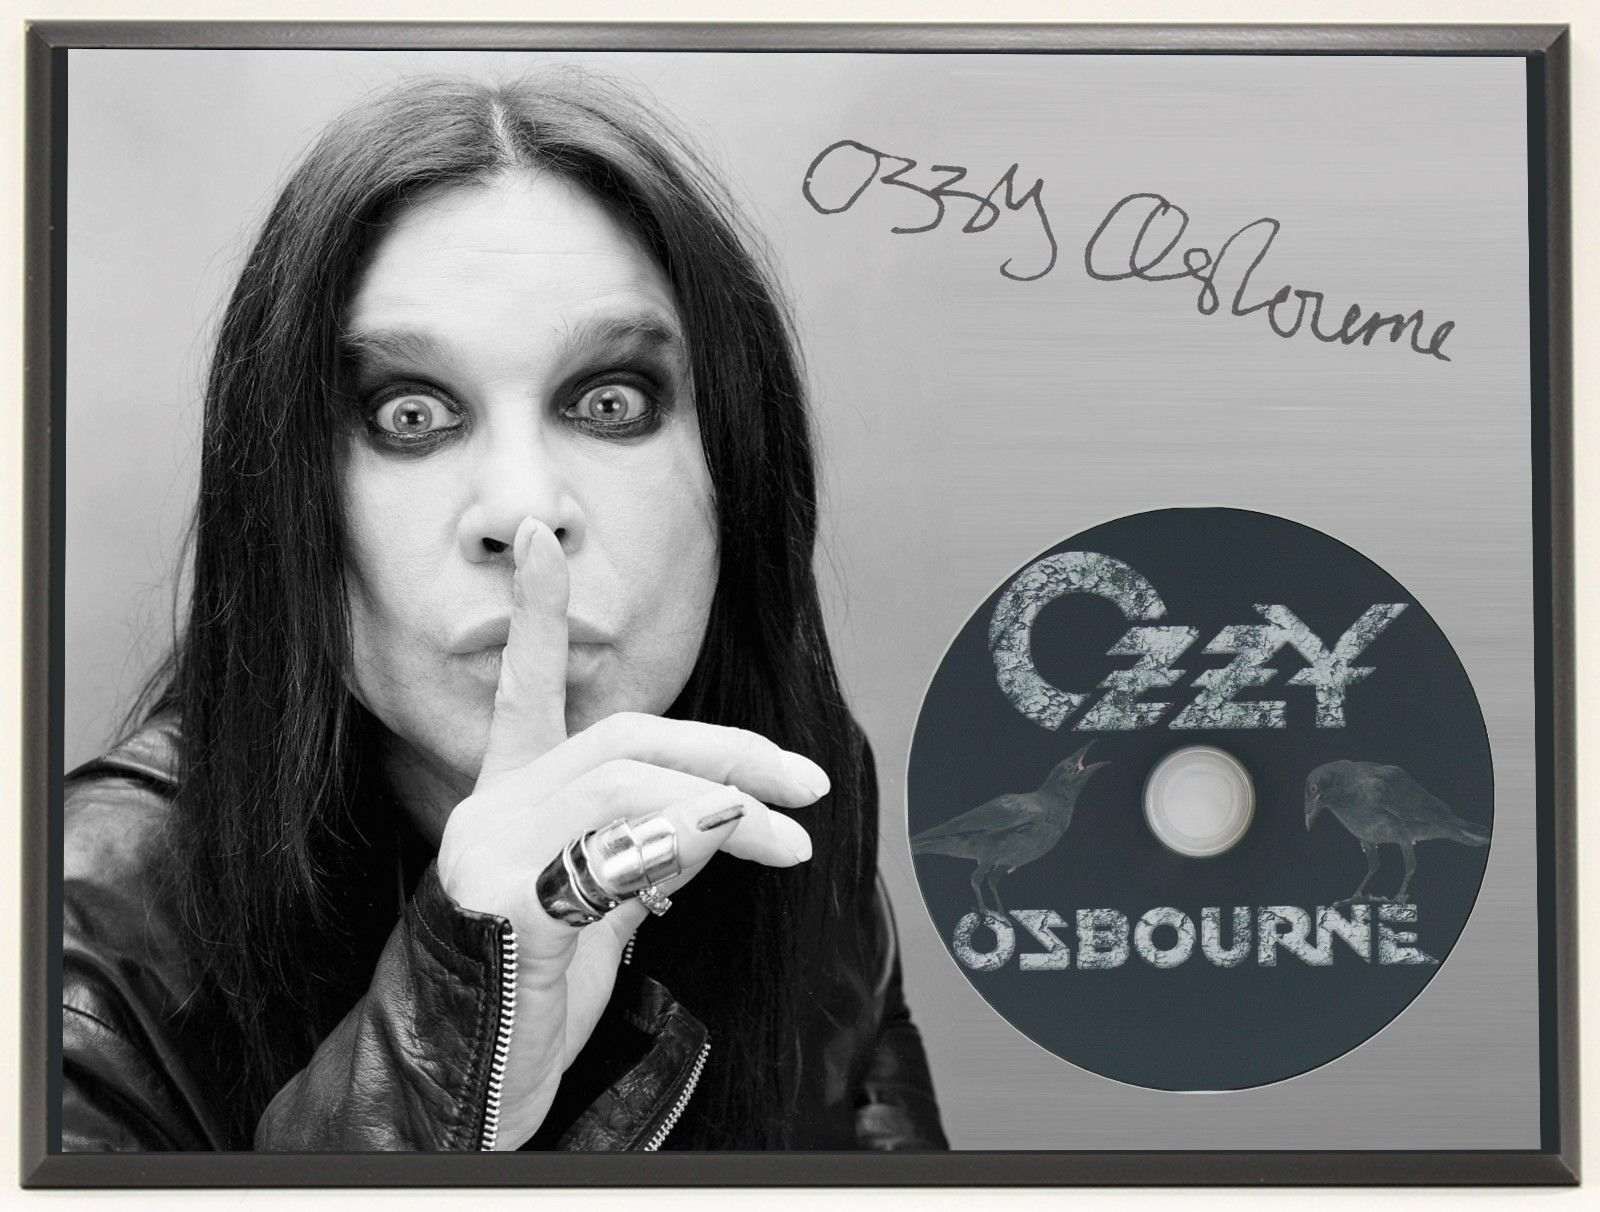 d9621e3eec4e Ozzy Osbourne Ltd Edition Signature Series Picture Cd Display Gift ...